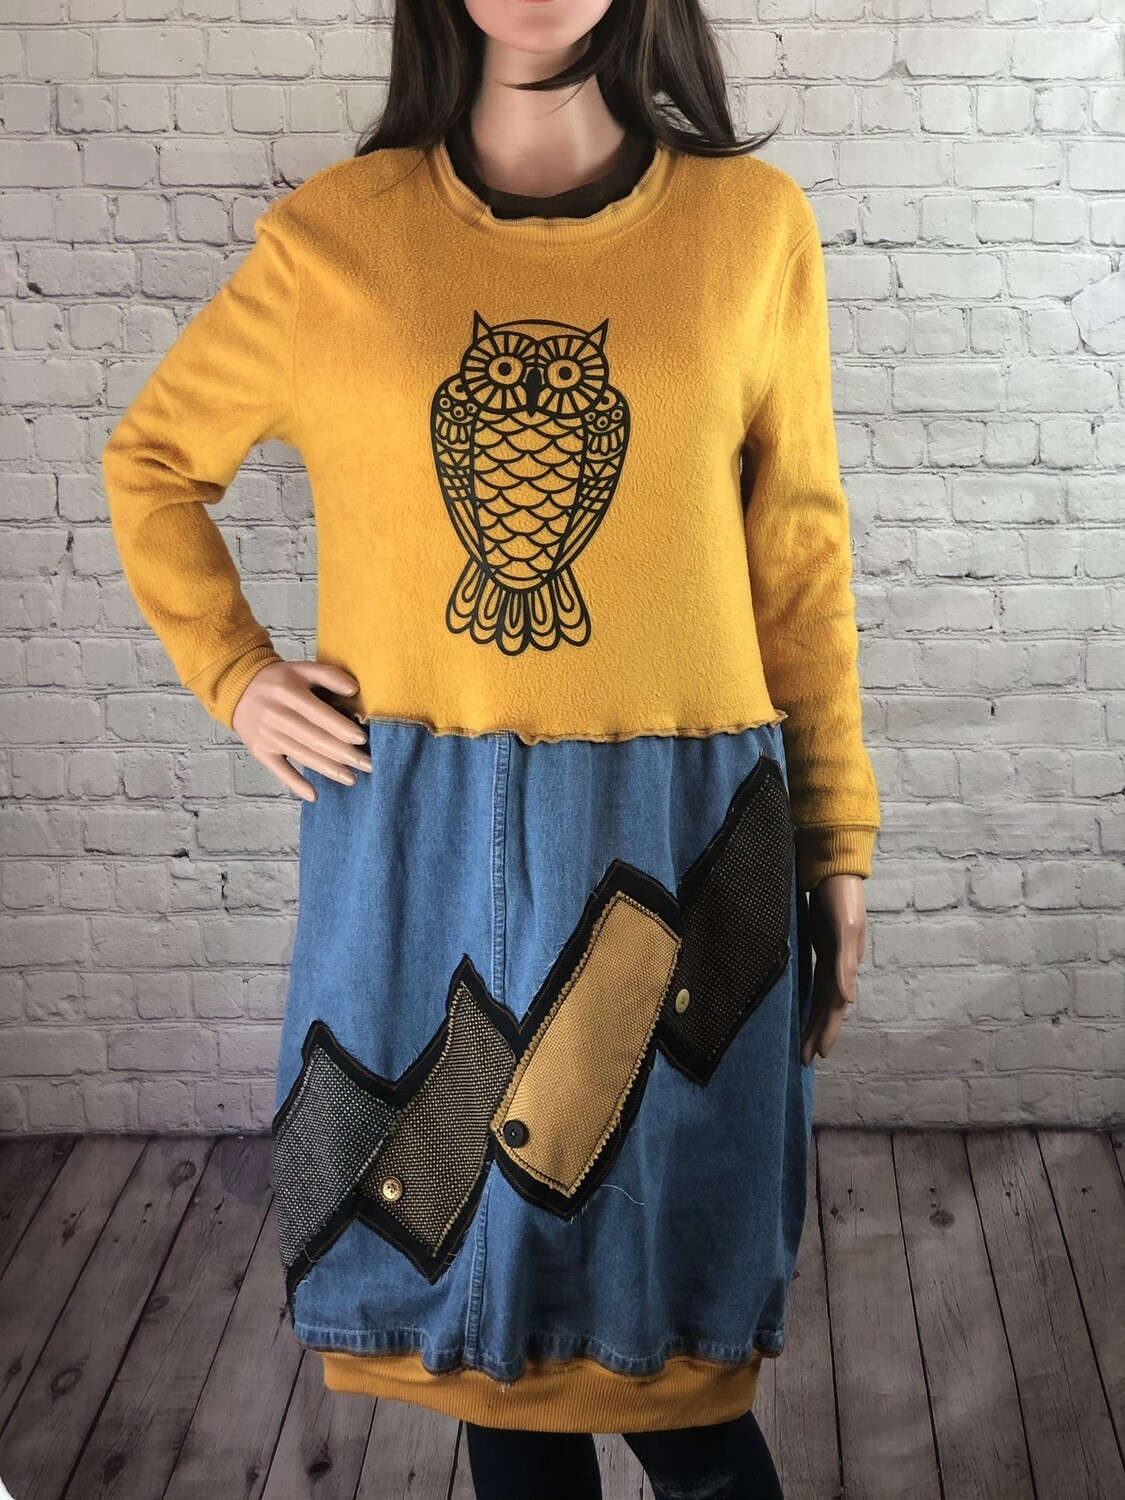 Fuzzy Owl Jean Dress Patchwork Recycled Free Spirited Cozy Sweater Trendy Sustainable S Threads Fashion Size L